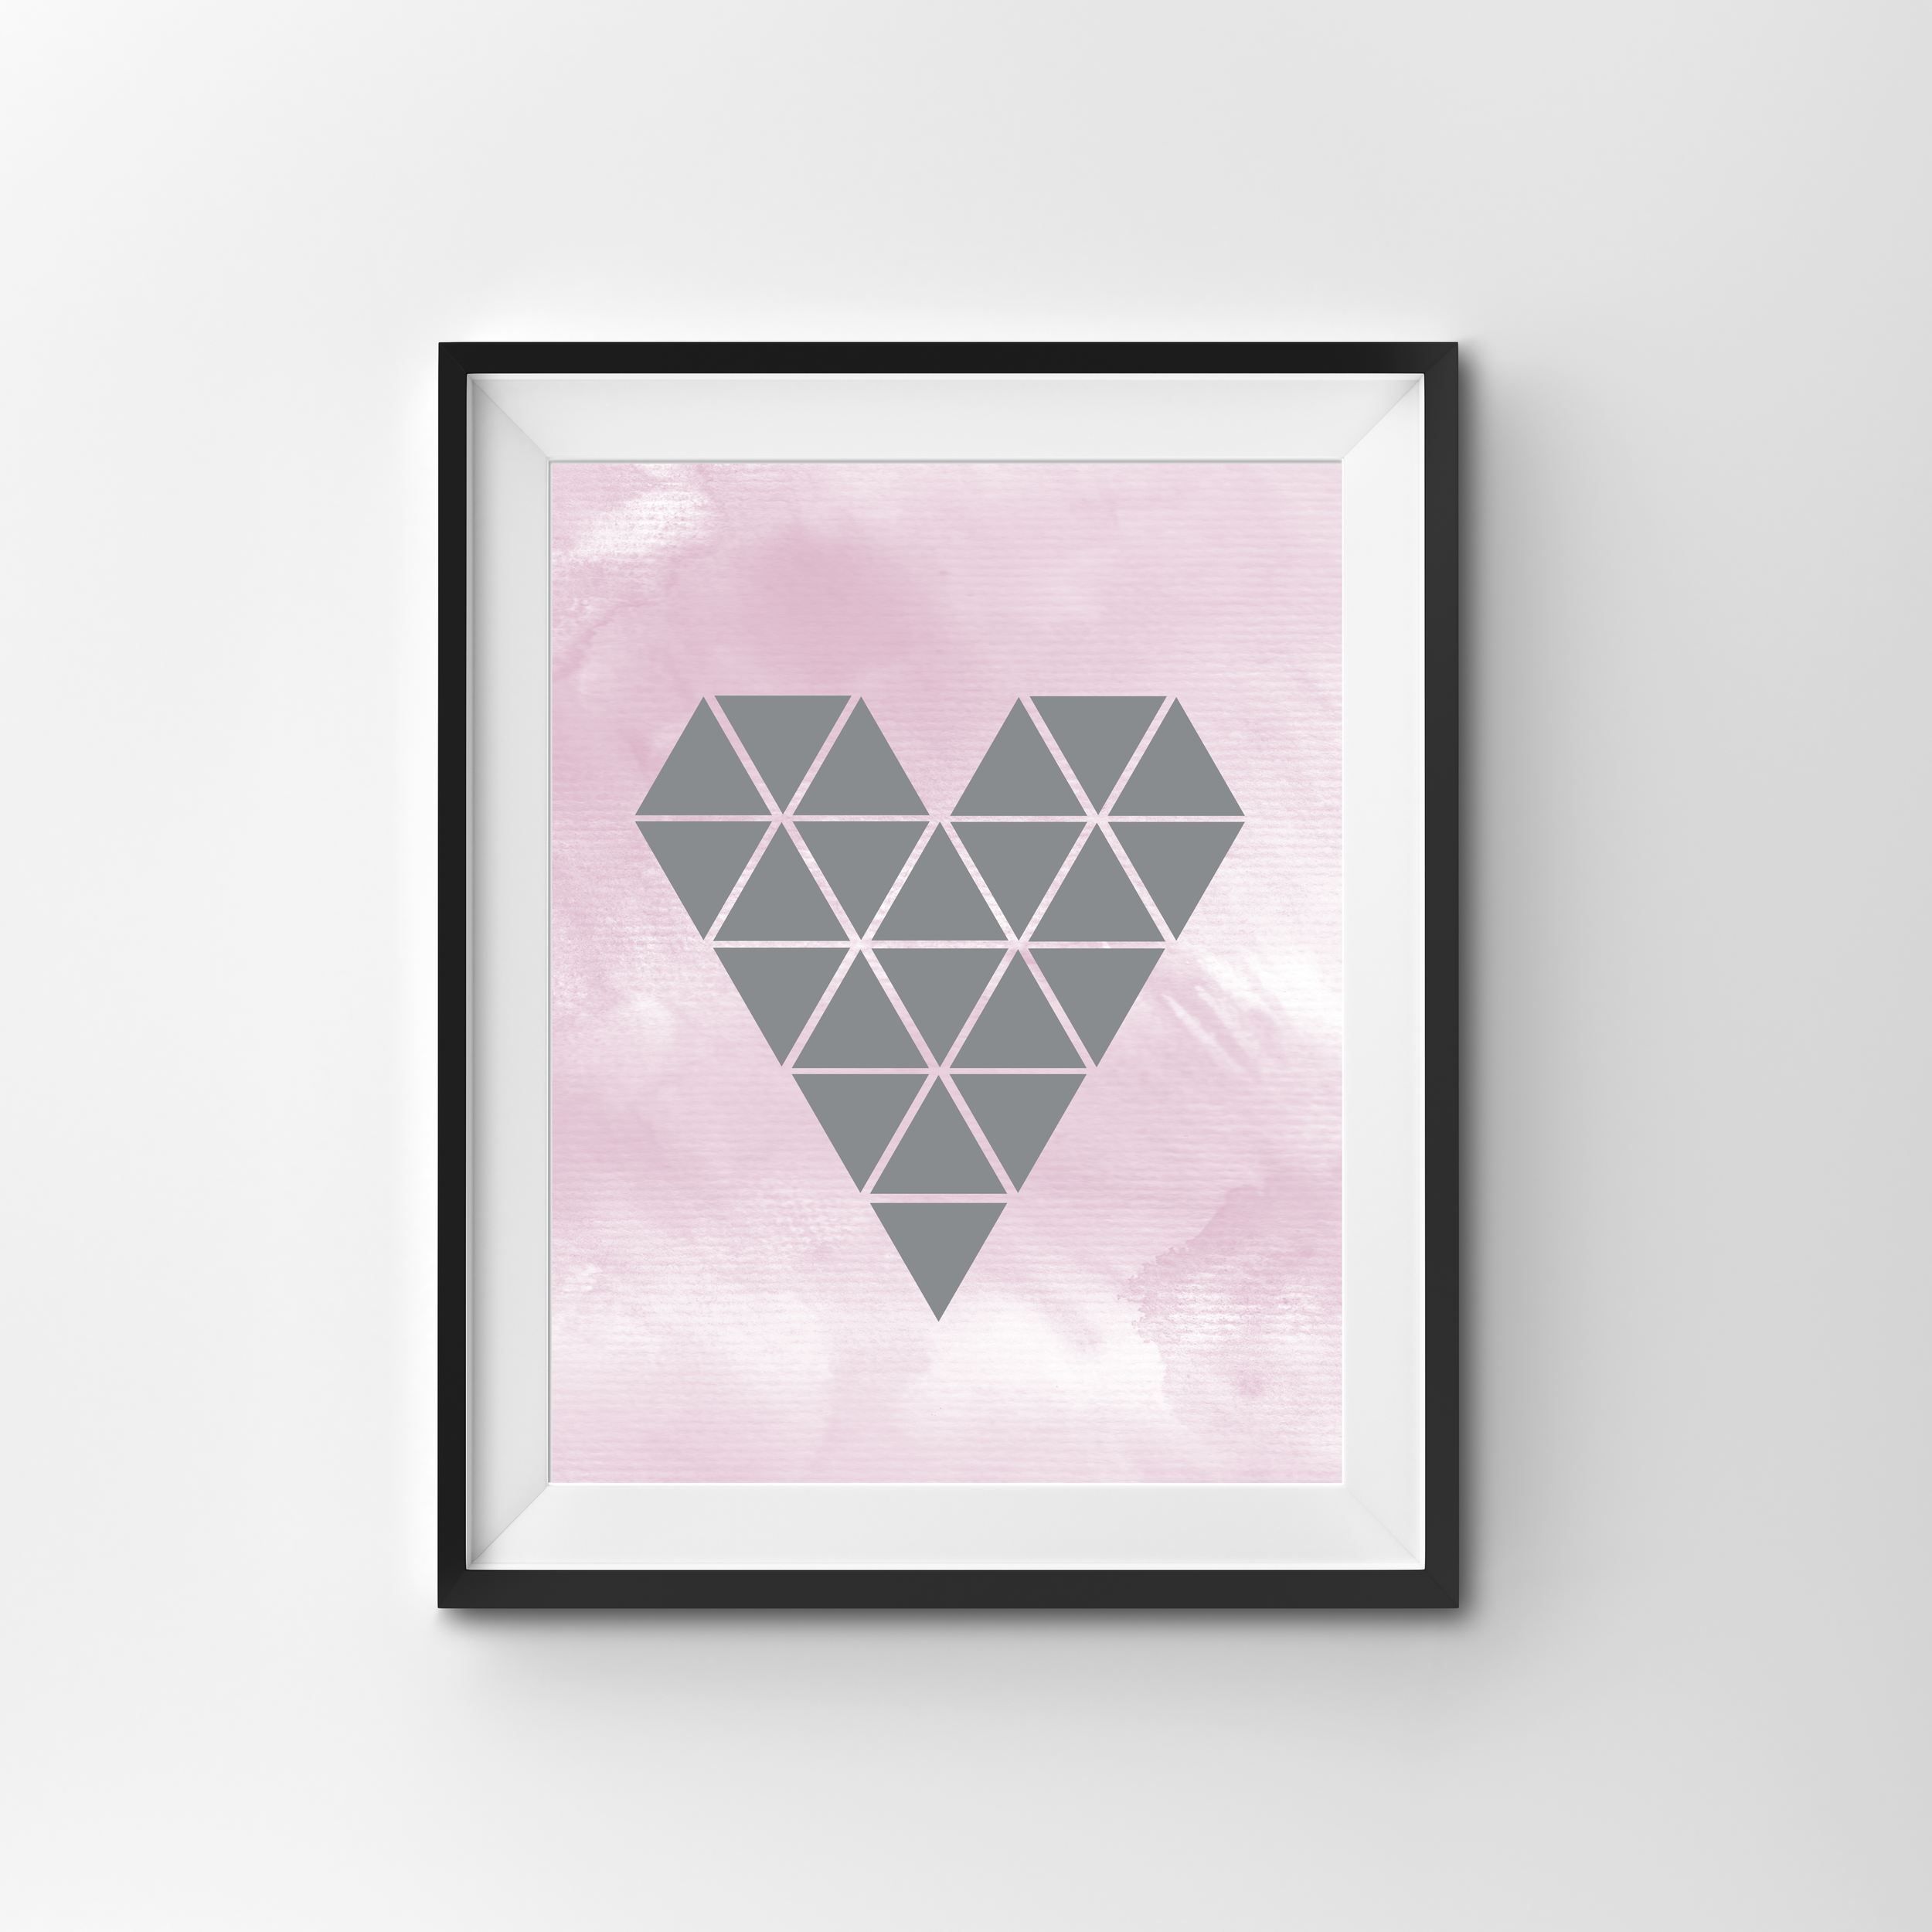 GEO HEART   COLOUR PRINT (with silver foil on request) PRINTED ON 300gsm TEXTURED CARD STOCK   A4 $17.00   A3 $27.00